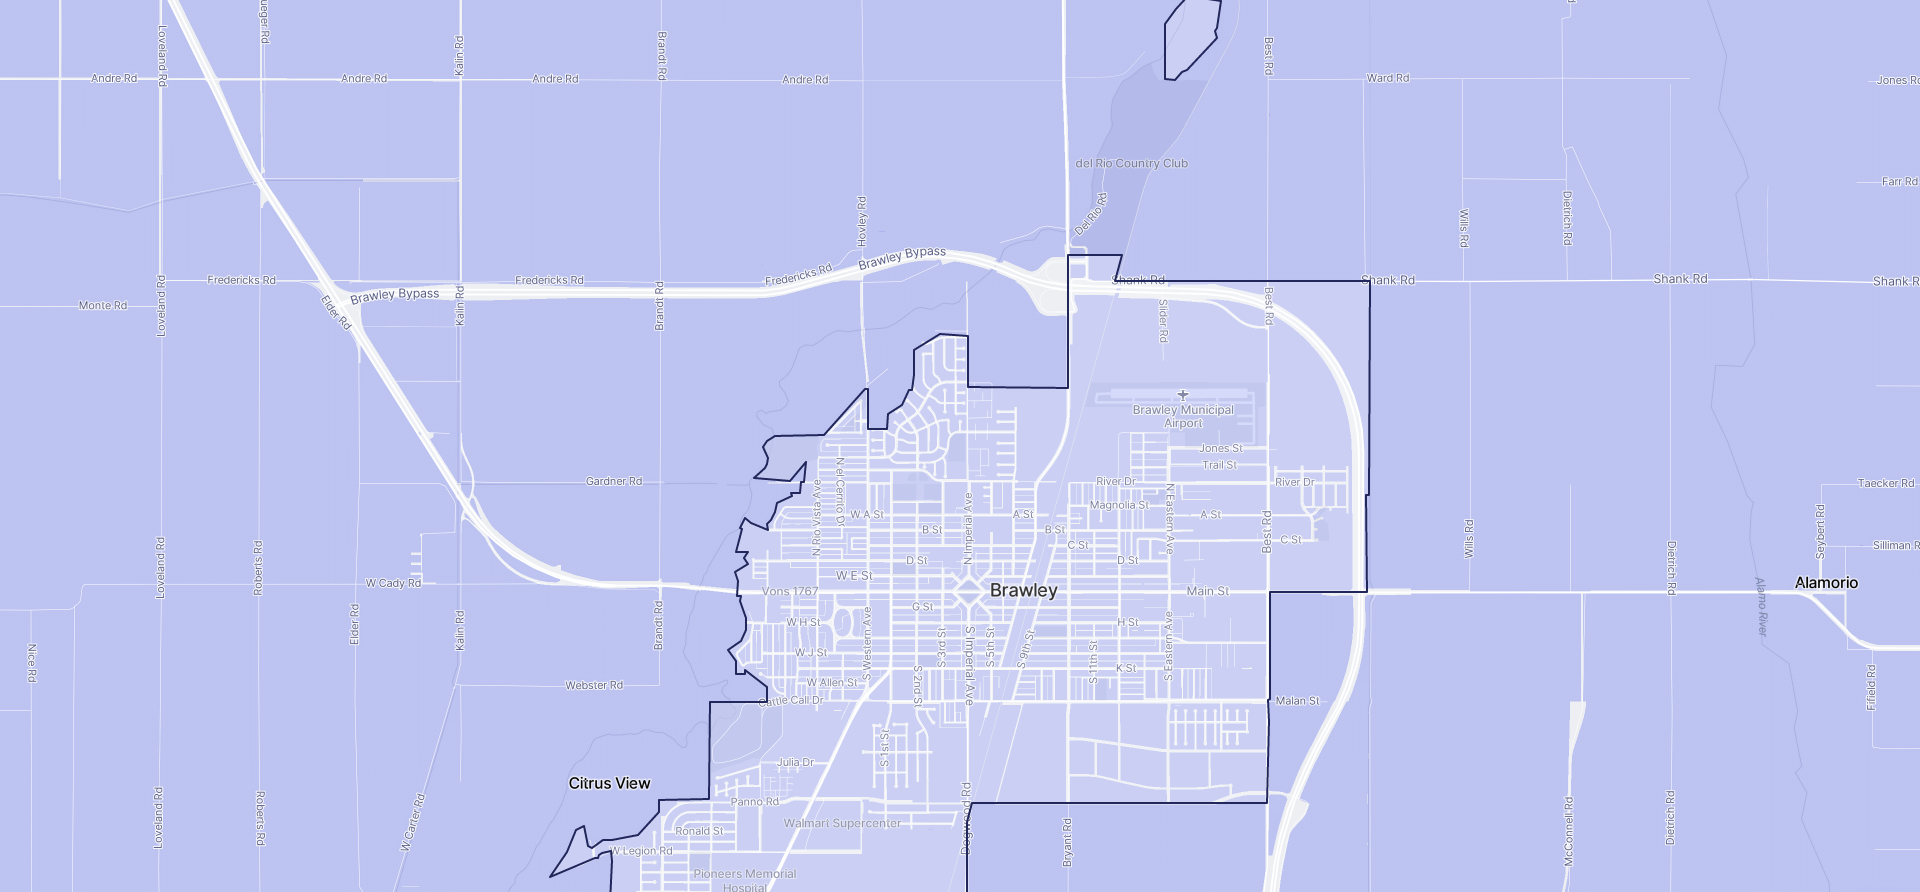 Image of Brawley boundaries on a map.